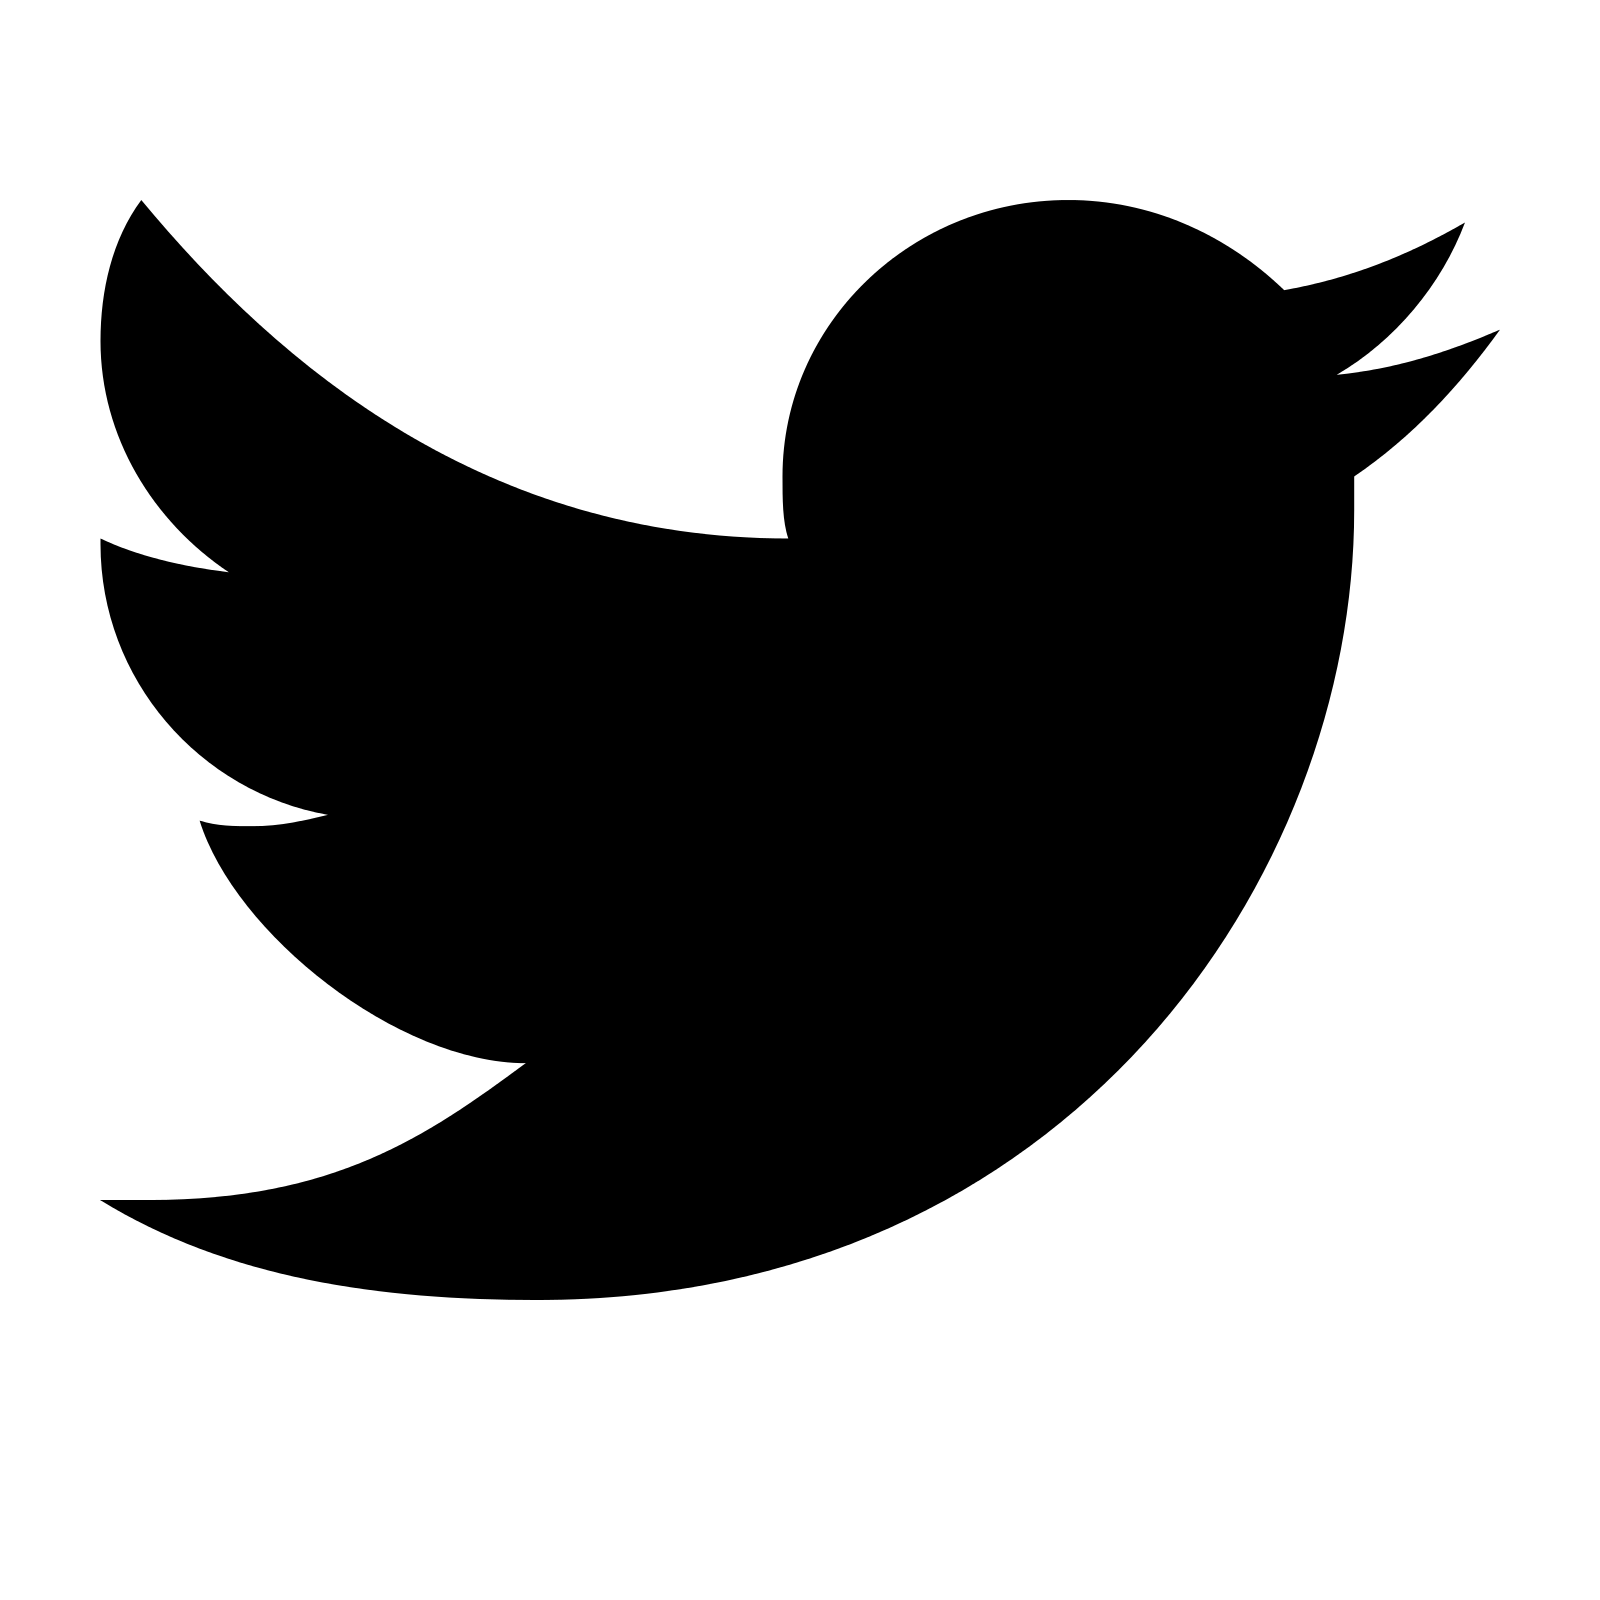 Twitter image png. Transparent images pluspng icon